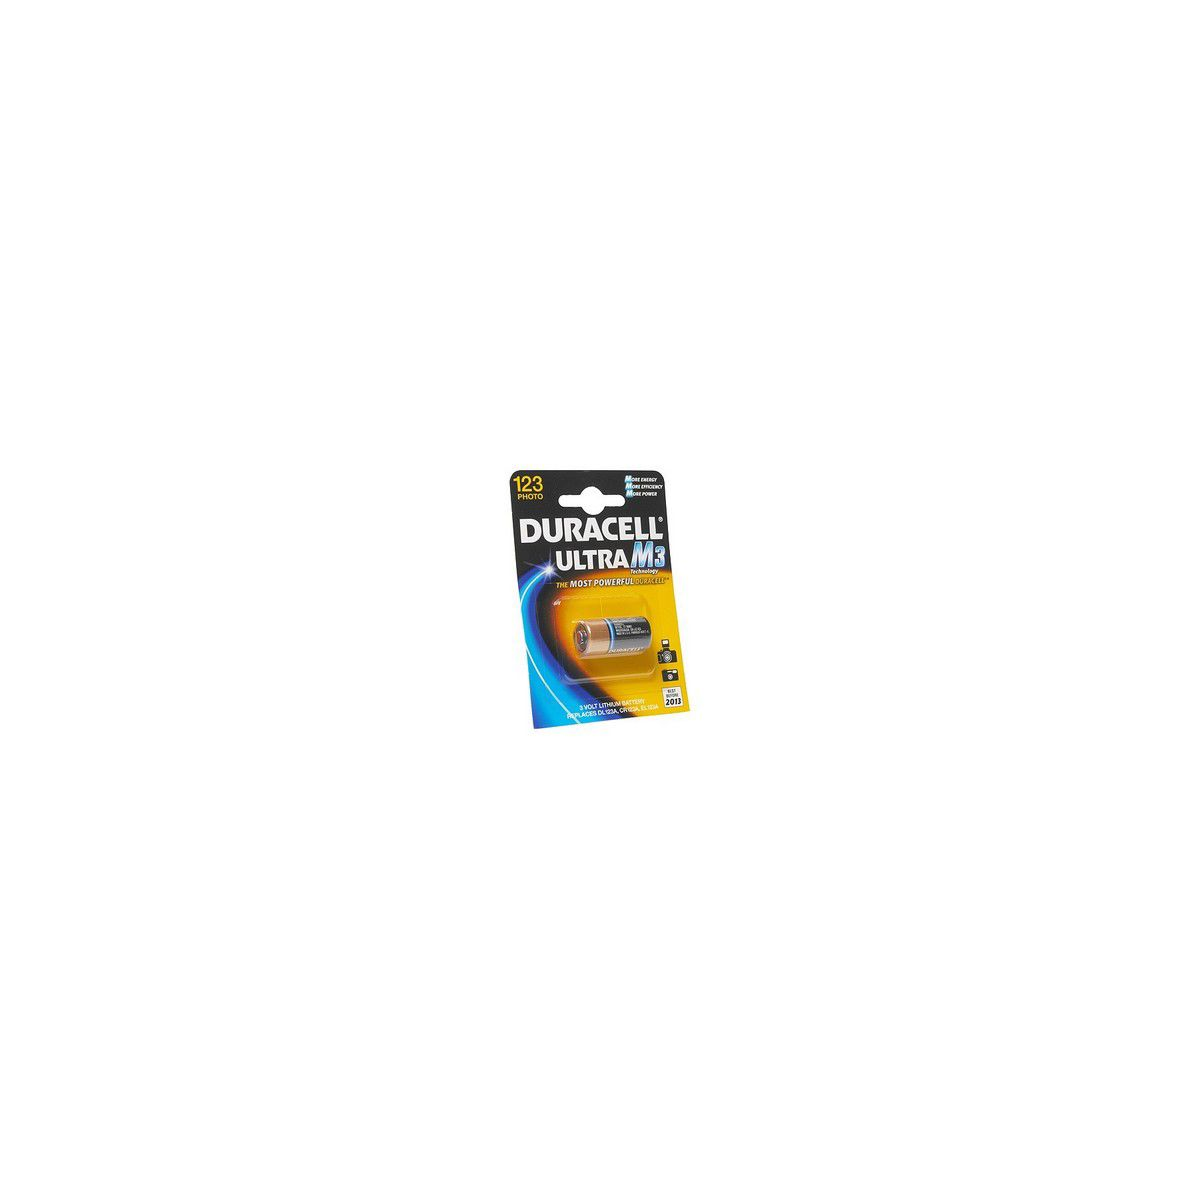 Pile non rechargeable duracell 123 * 1 (photo)